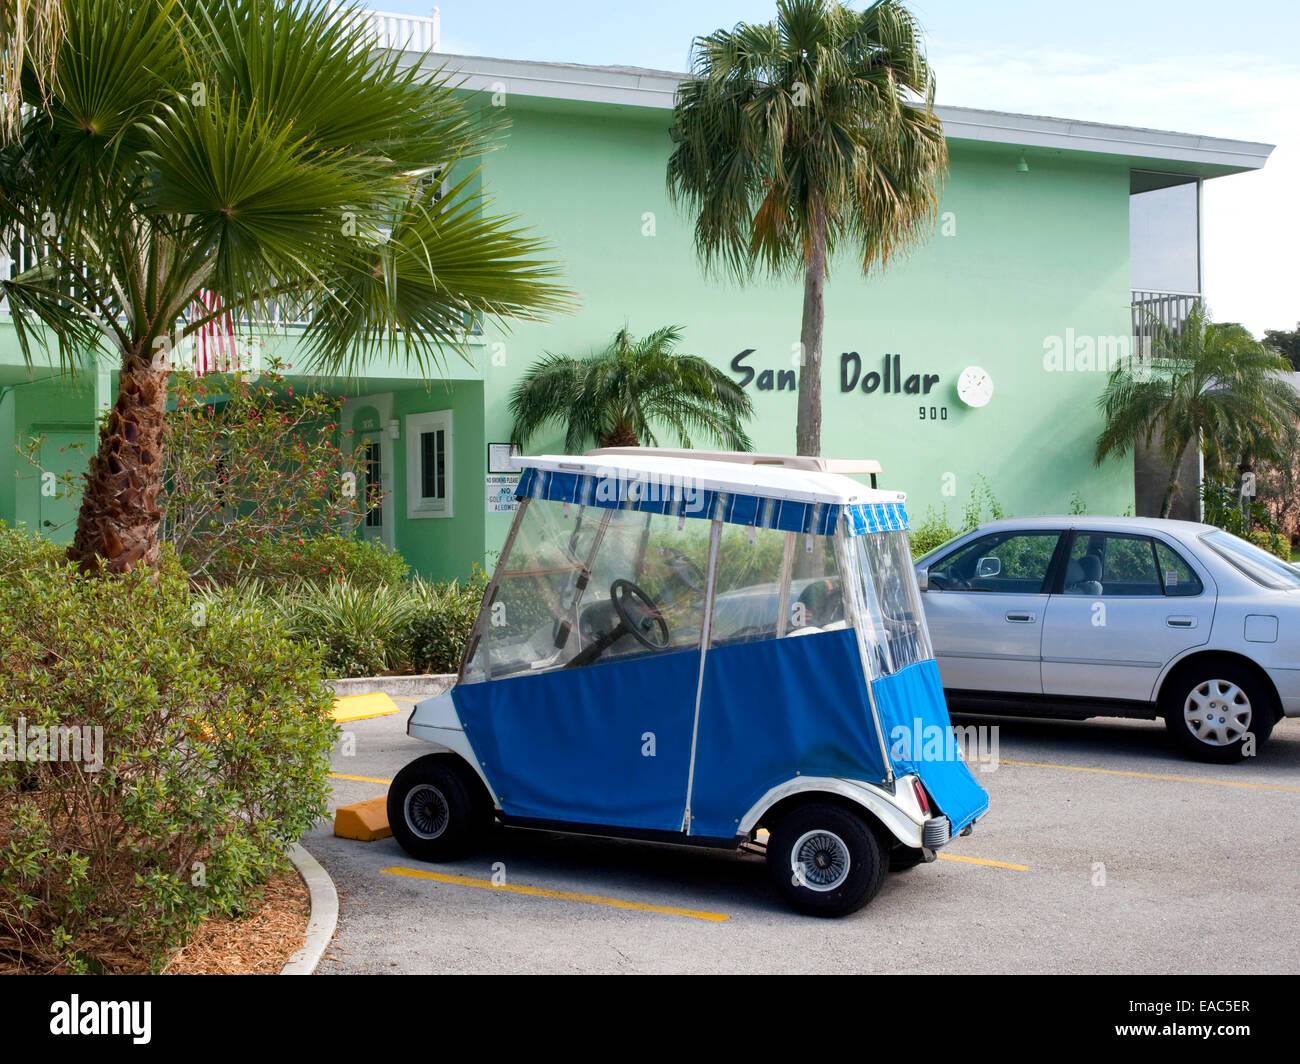 Covered golf cart in motel parking lot - Stock Image